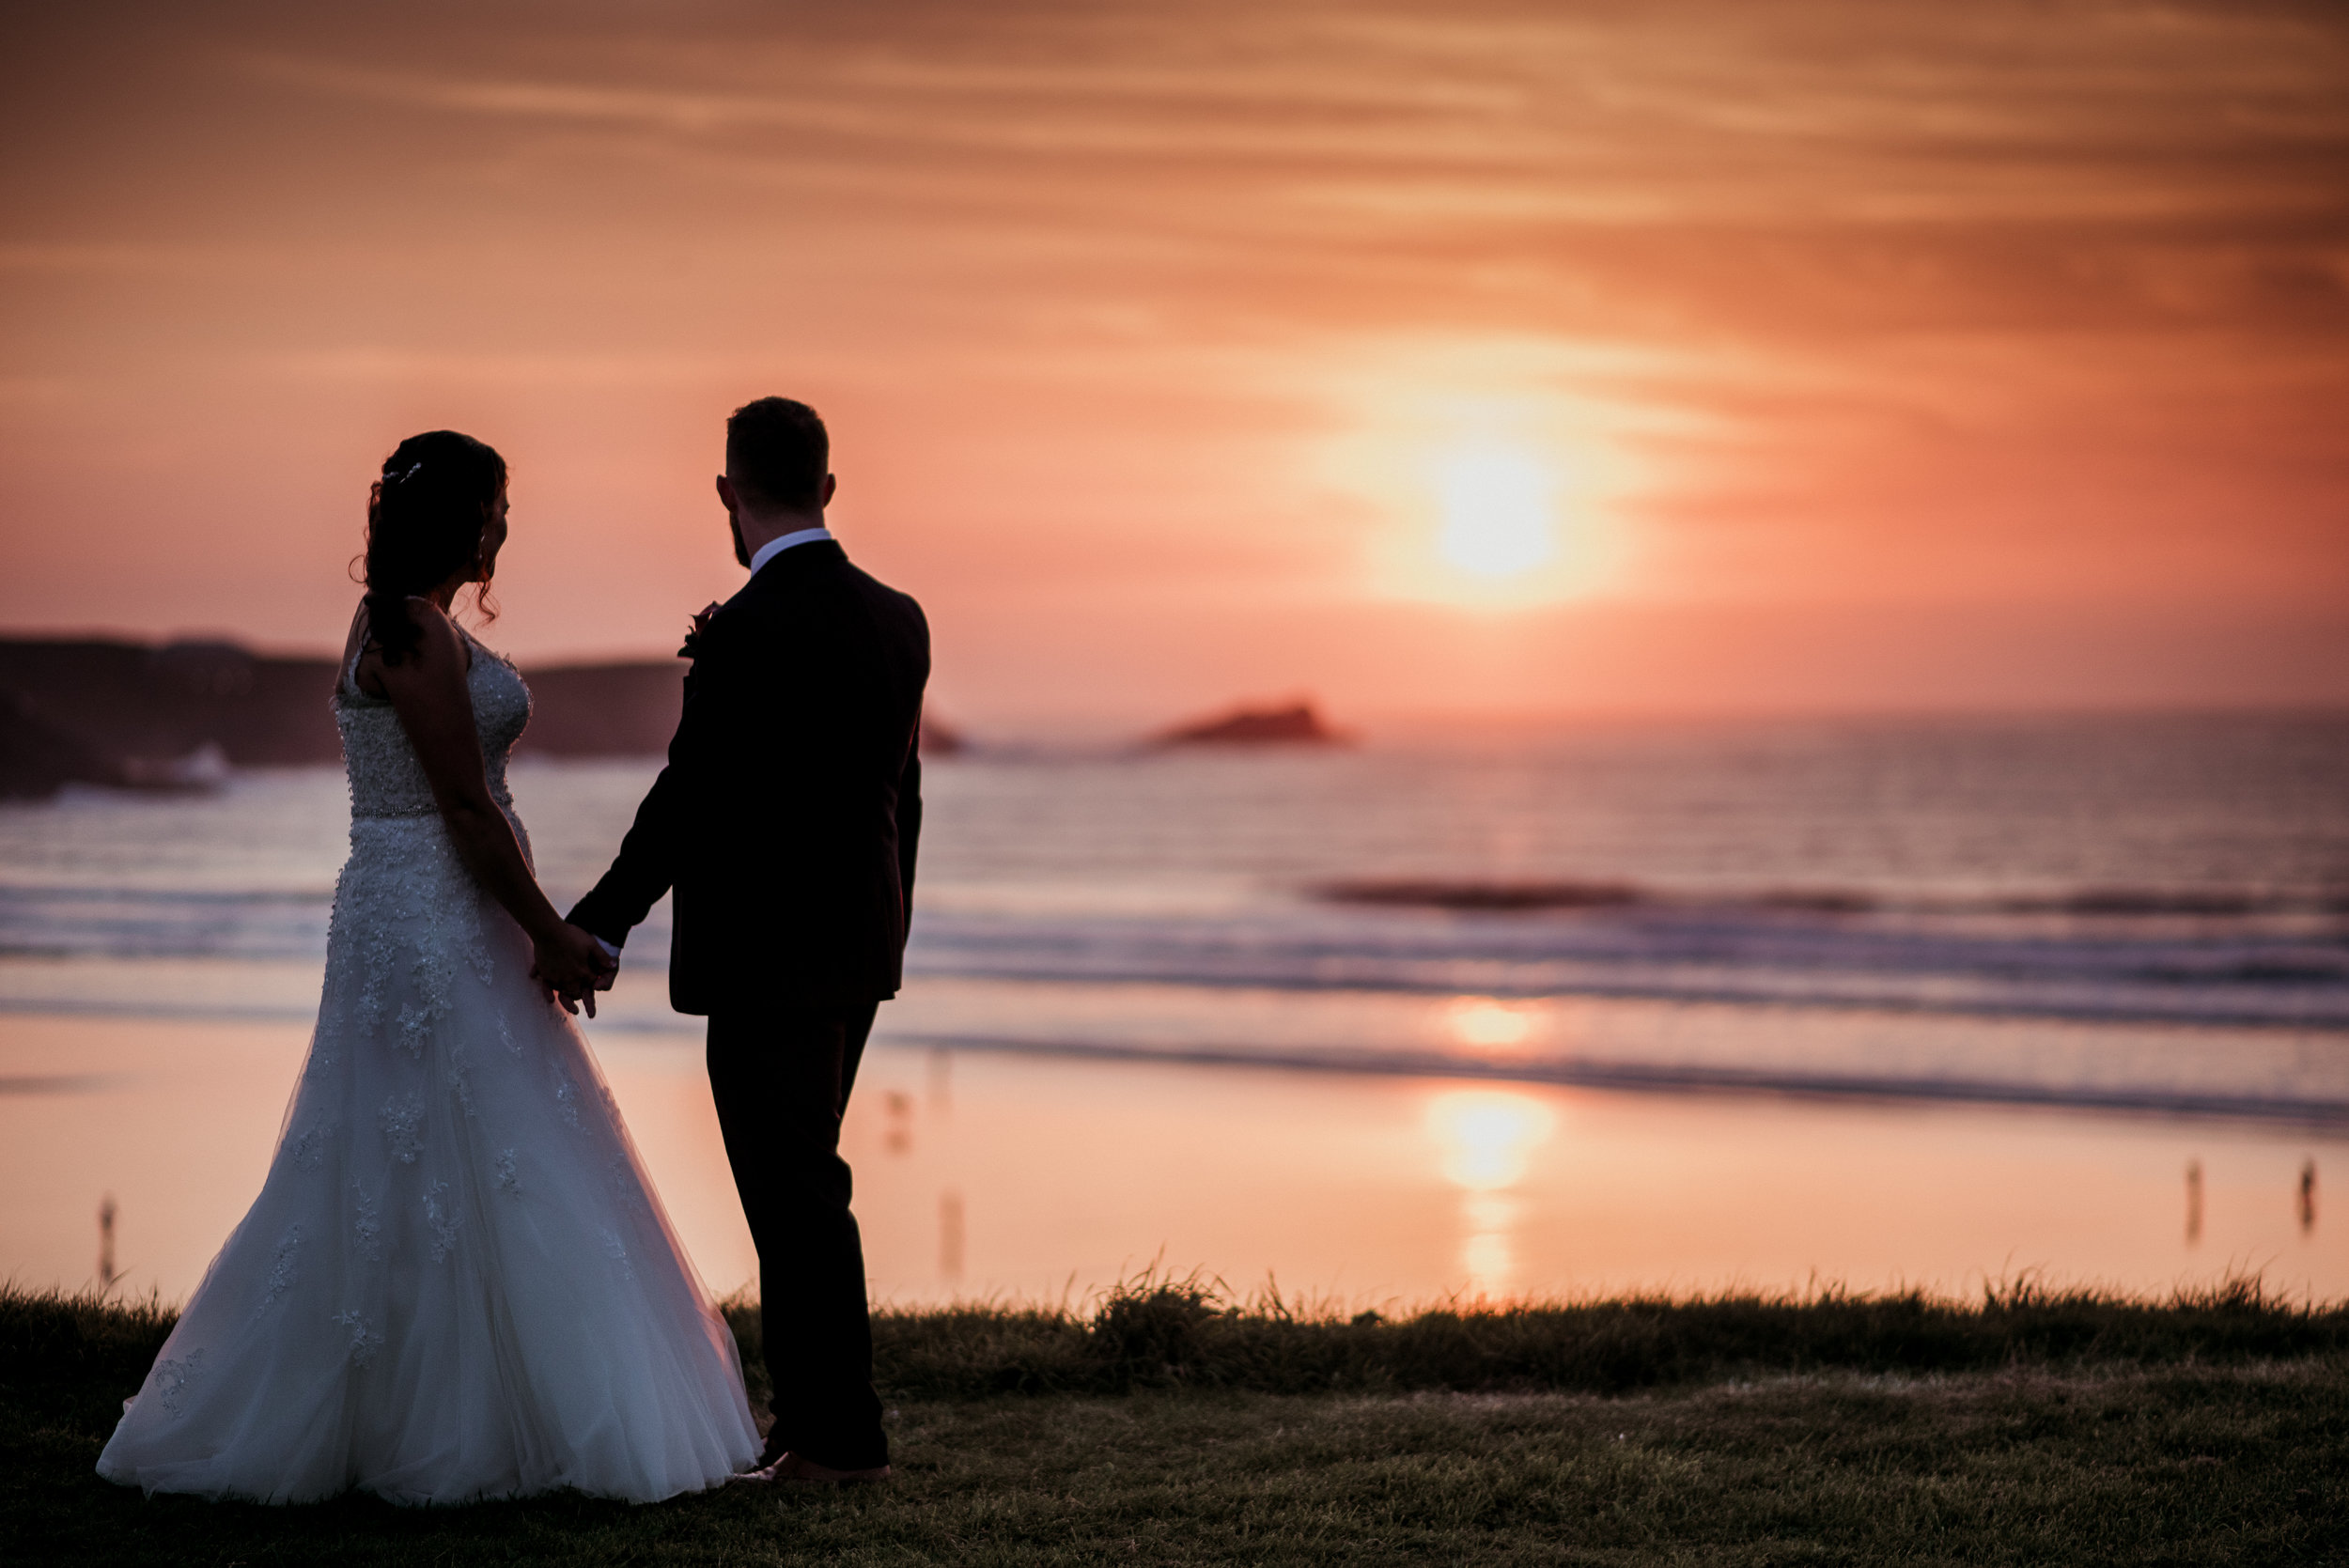 wedding-photographer-fistral-newquay-cornwall.jpg